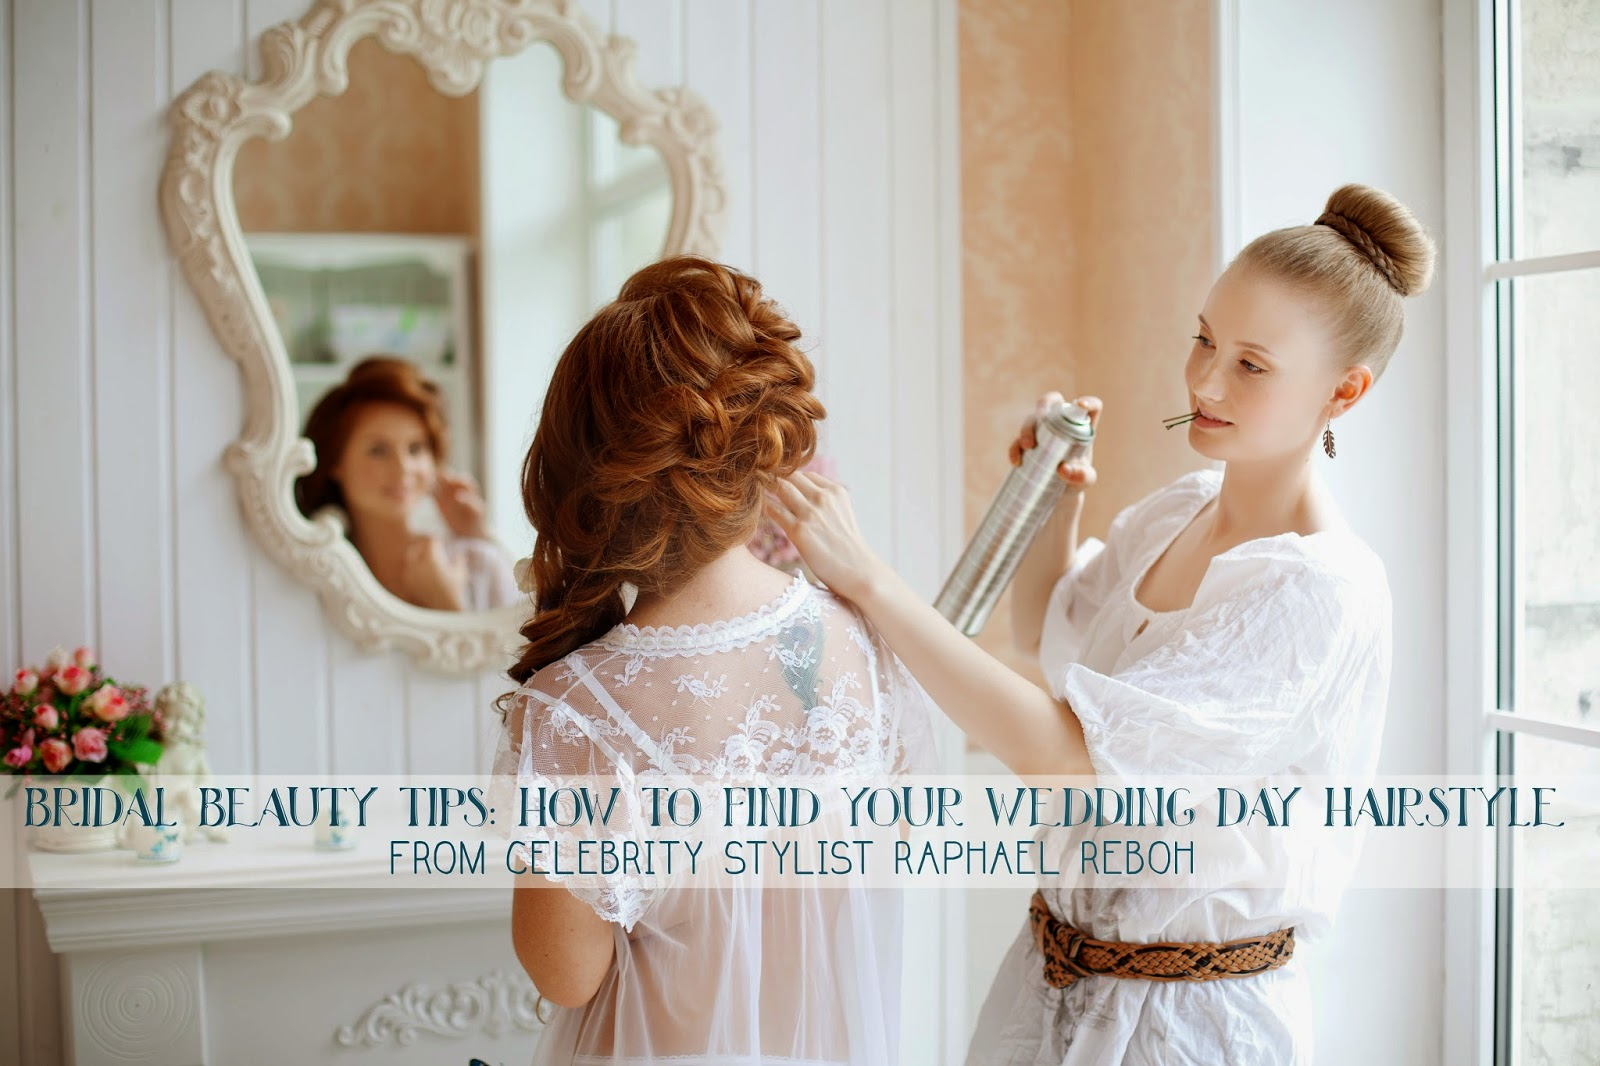 bridal hairstyles, celebrity stylist raphael reboh, wedding tips